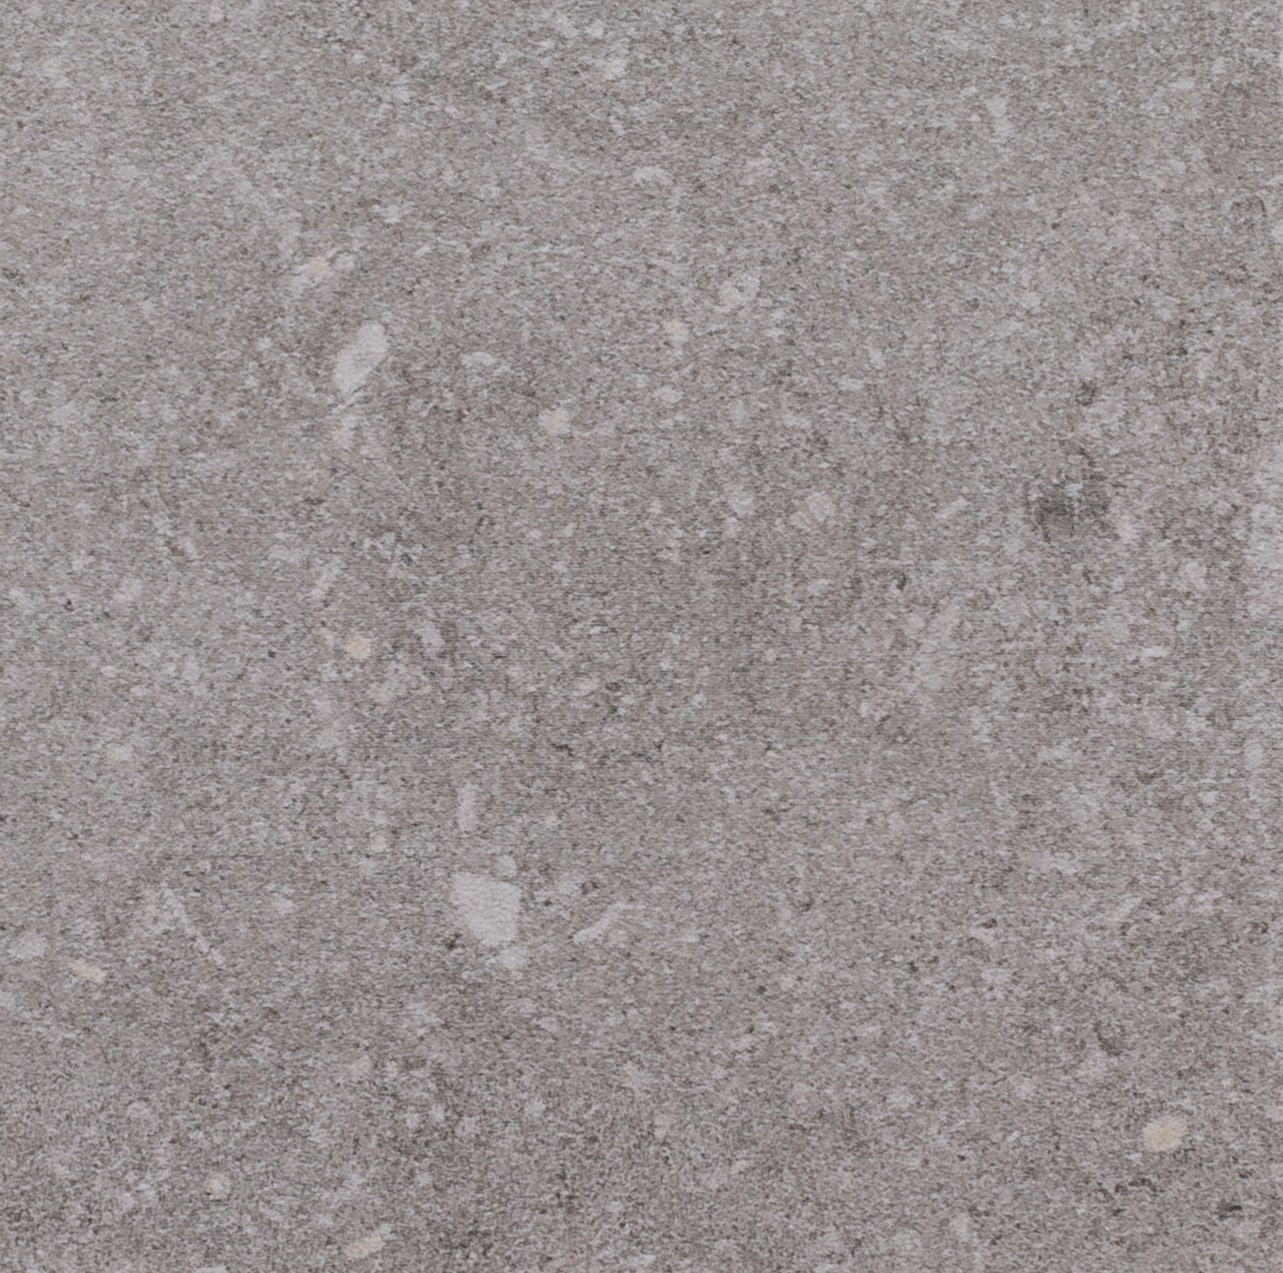 Collection Bluestone Light Grey 9,4x9,4 cm